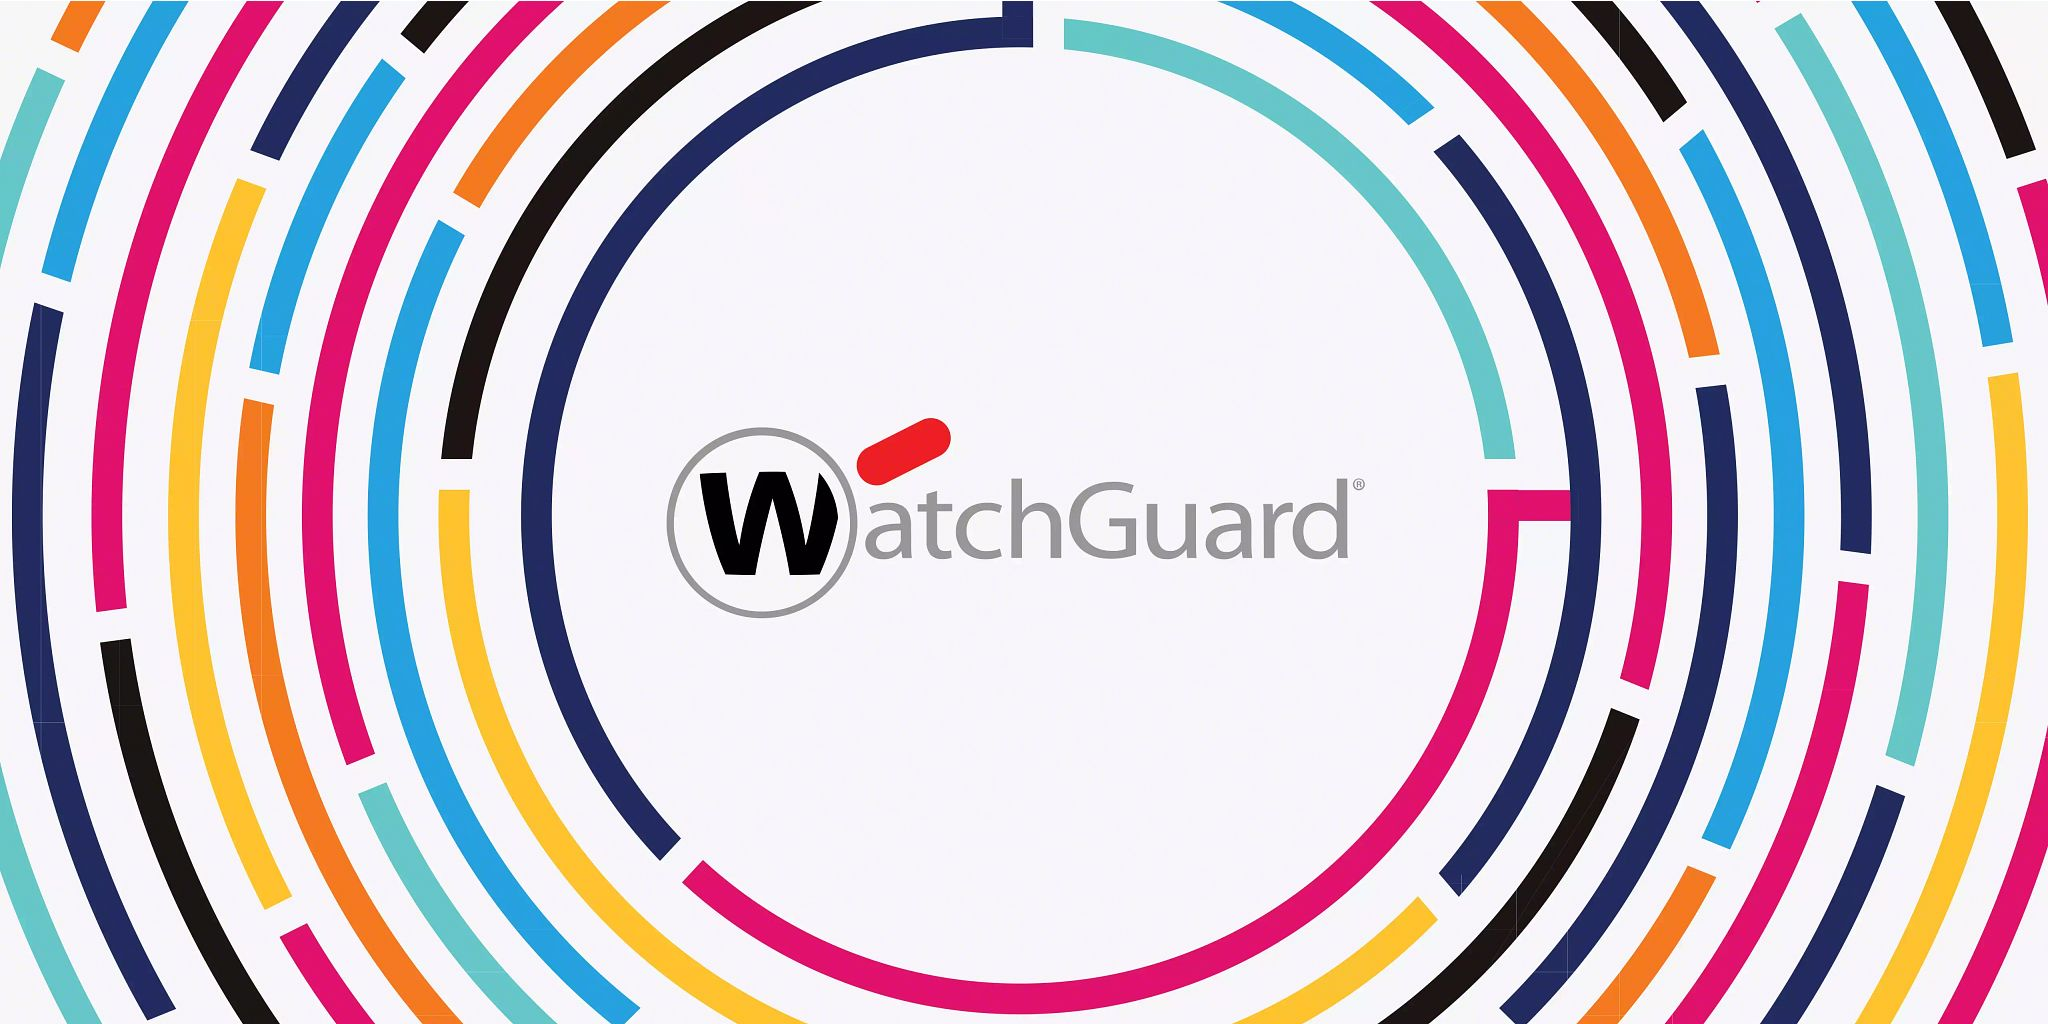 Blog header graphic: WatchGuard logo encircled by solid-colored lines expanding to the edge of the graphic.